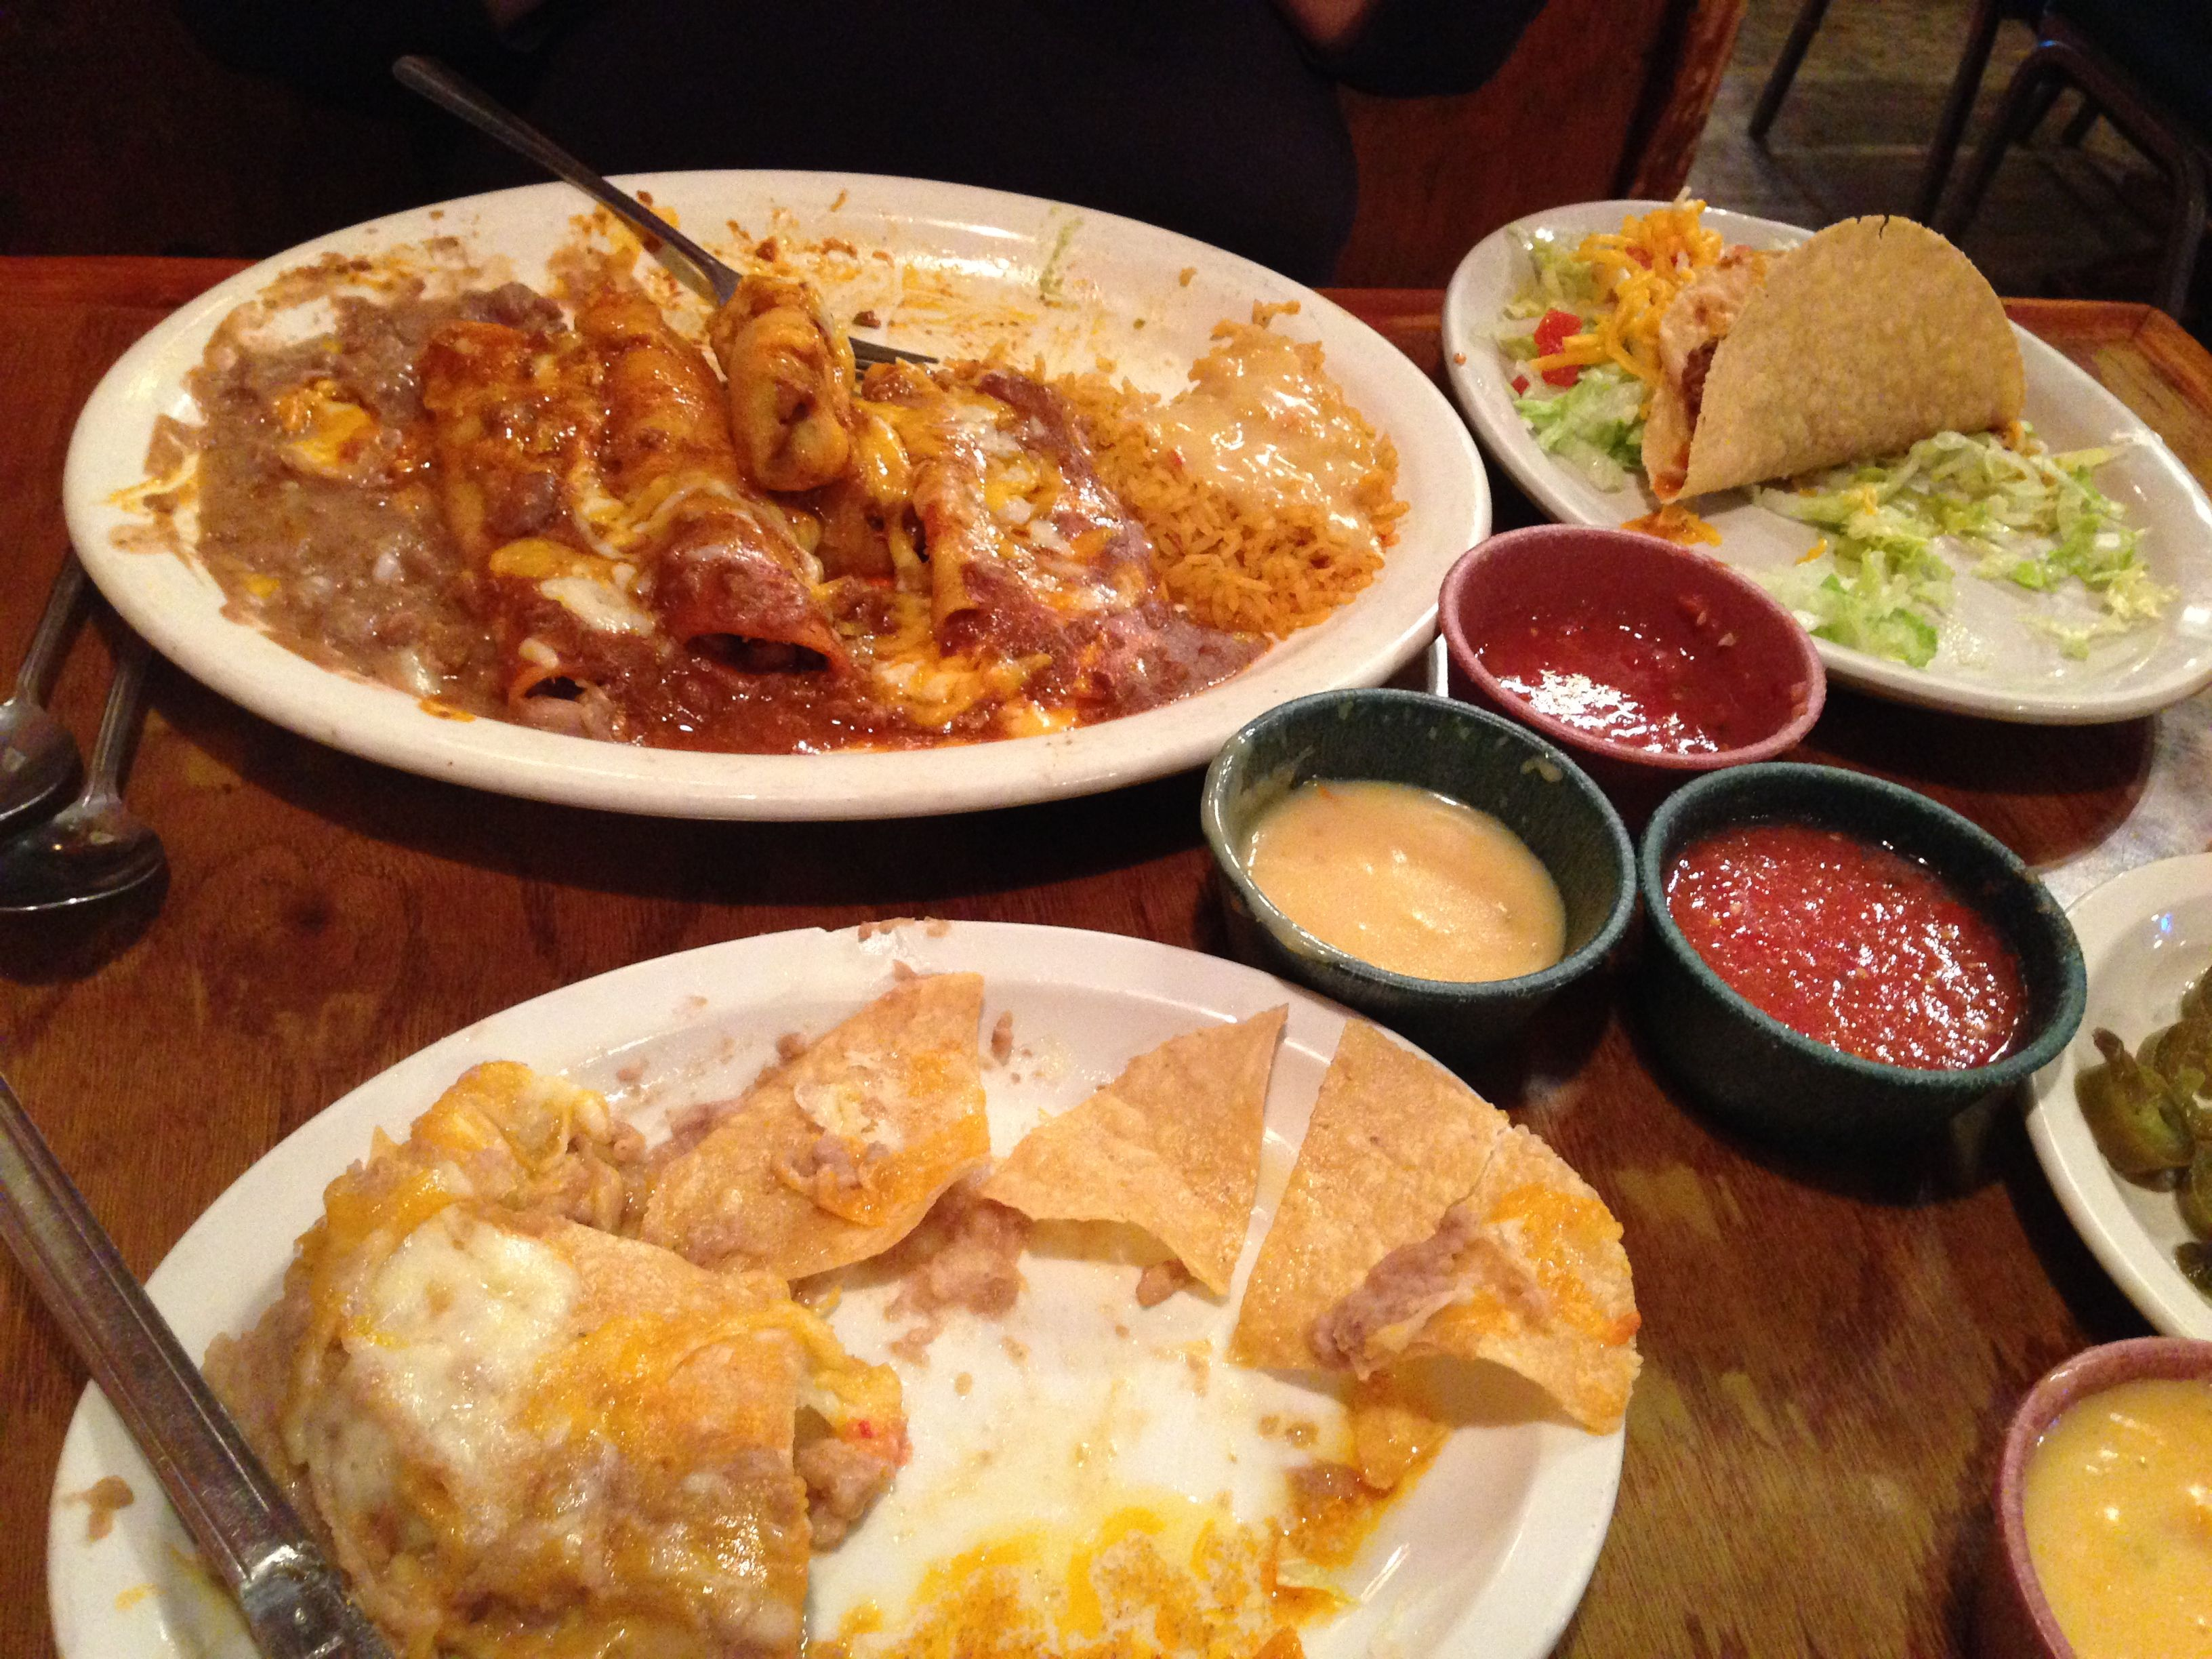 Chelino S Mexican Restaurant In Bricktown Okc Ok This Is The Best Tex Mex Food I Ve Ever Put In My Mouth They Have Other Stores Aro Tex Mex Recipes Eat Food